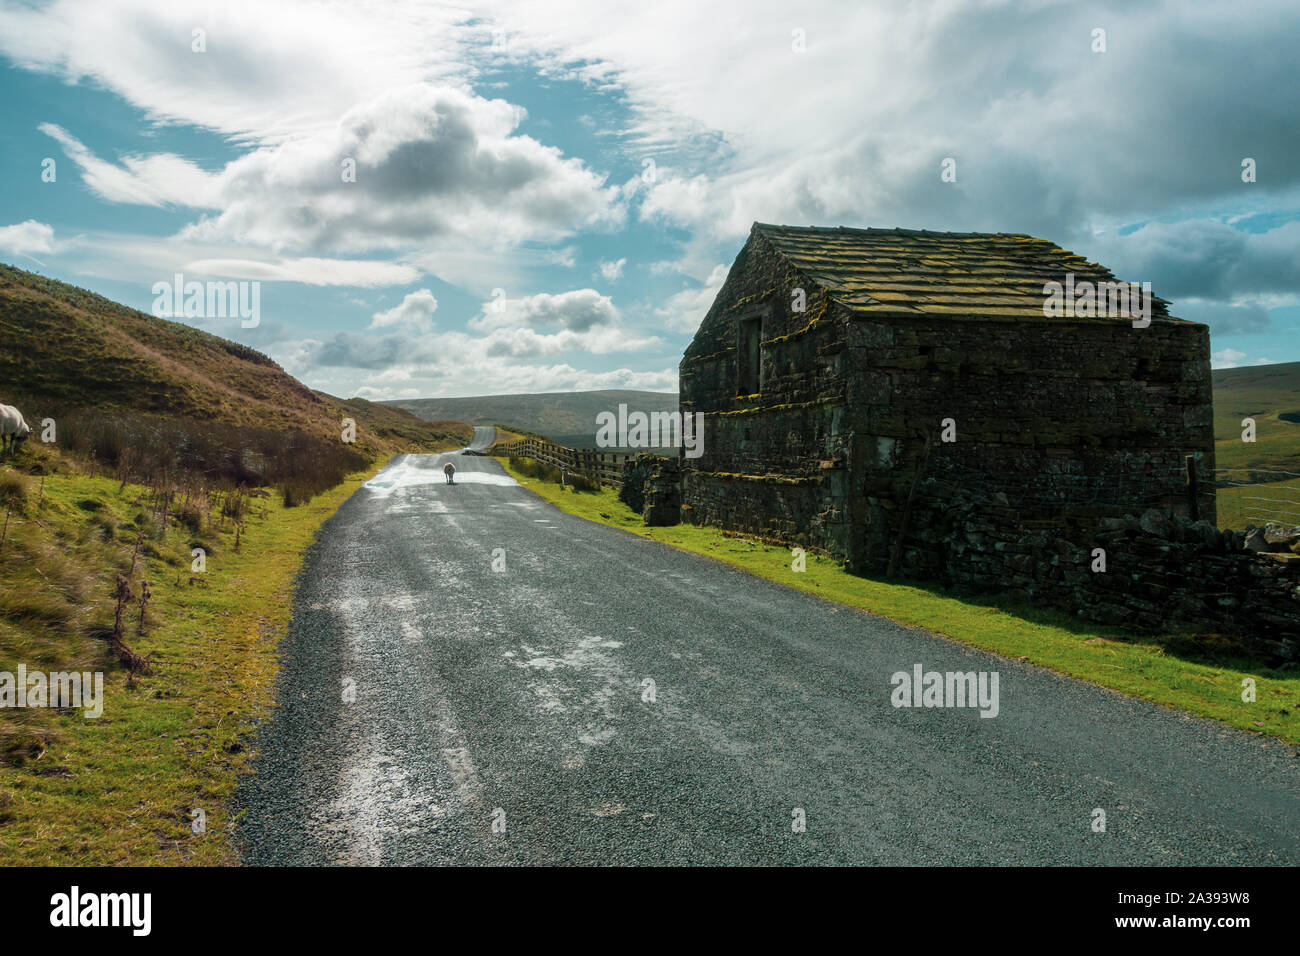 Old stone barn and sheep in the road in Birkdale in Upper Swaledale on the B6270 above Nateby, Yorkshire Dales Stock Photo